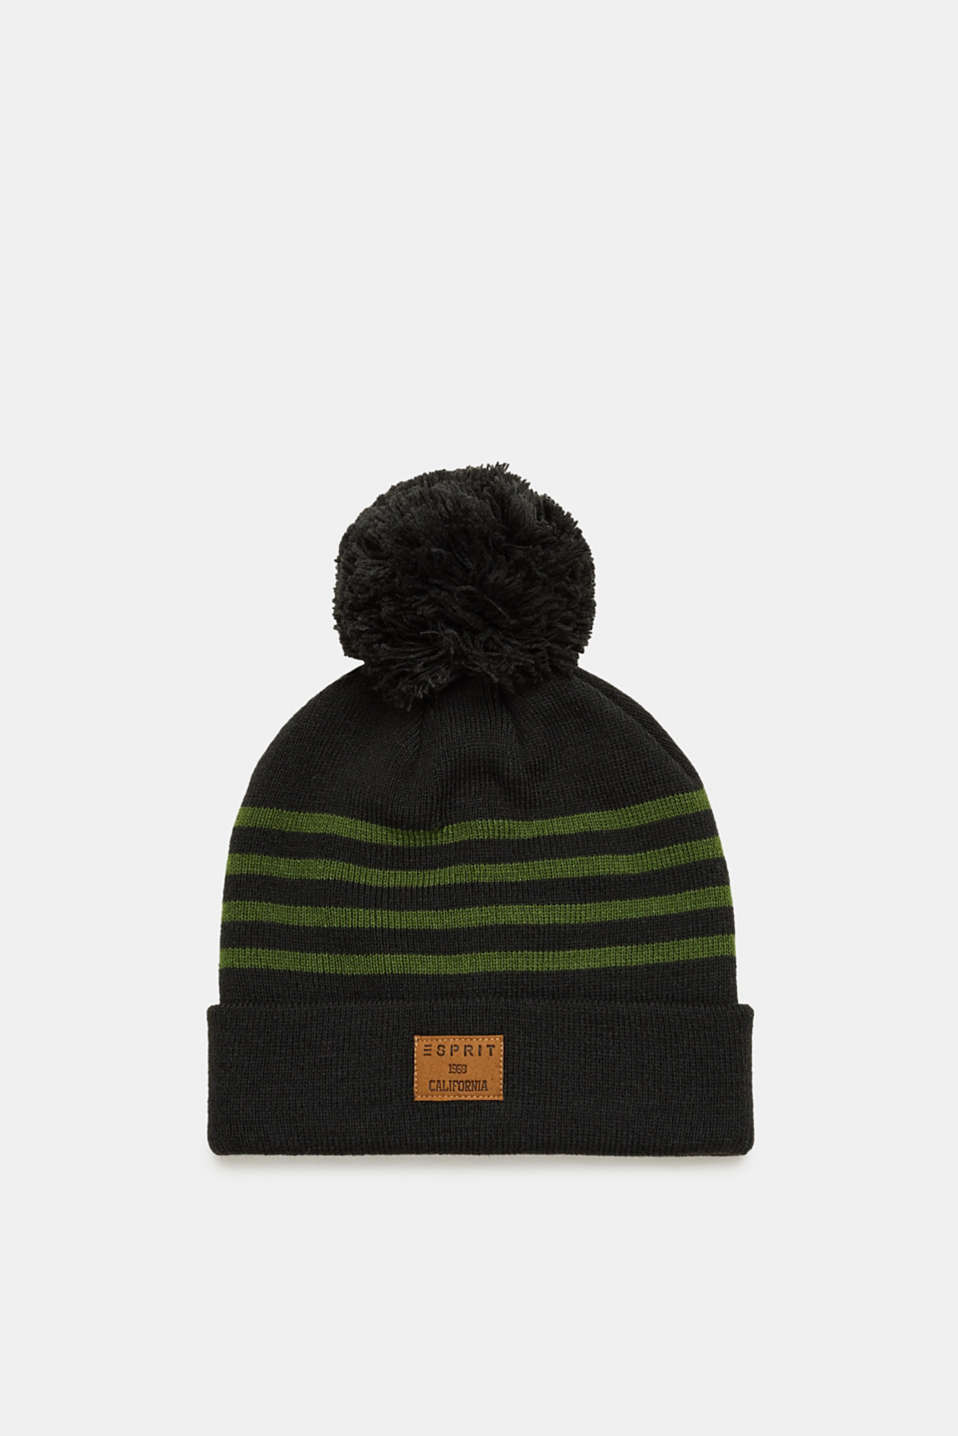 Esprit - Knitted beanie with stripes and a pompom